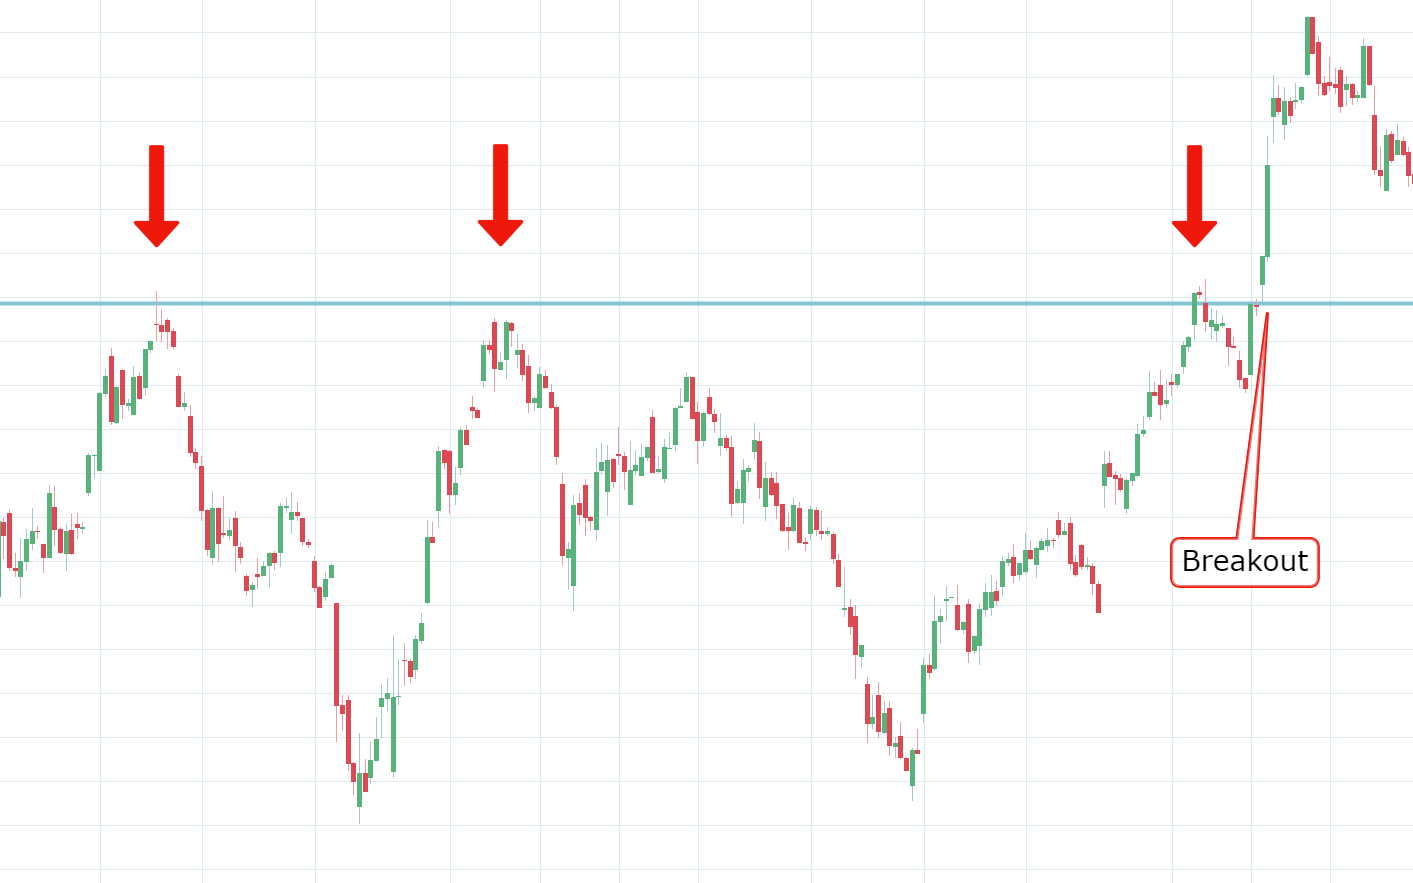 AAPL Breakout Example